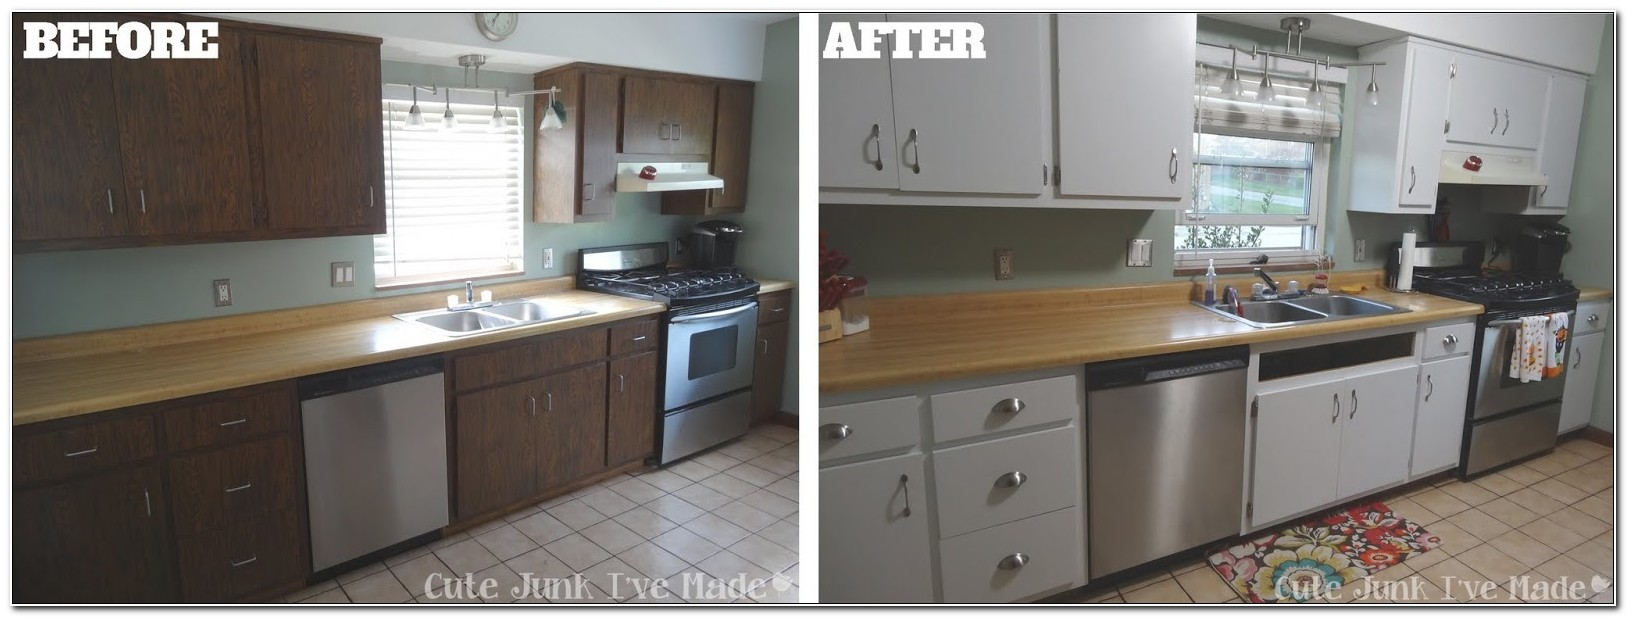 Can You Reface Laminate Kitchen Cabinets